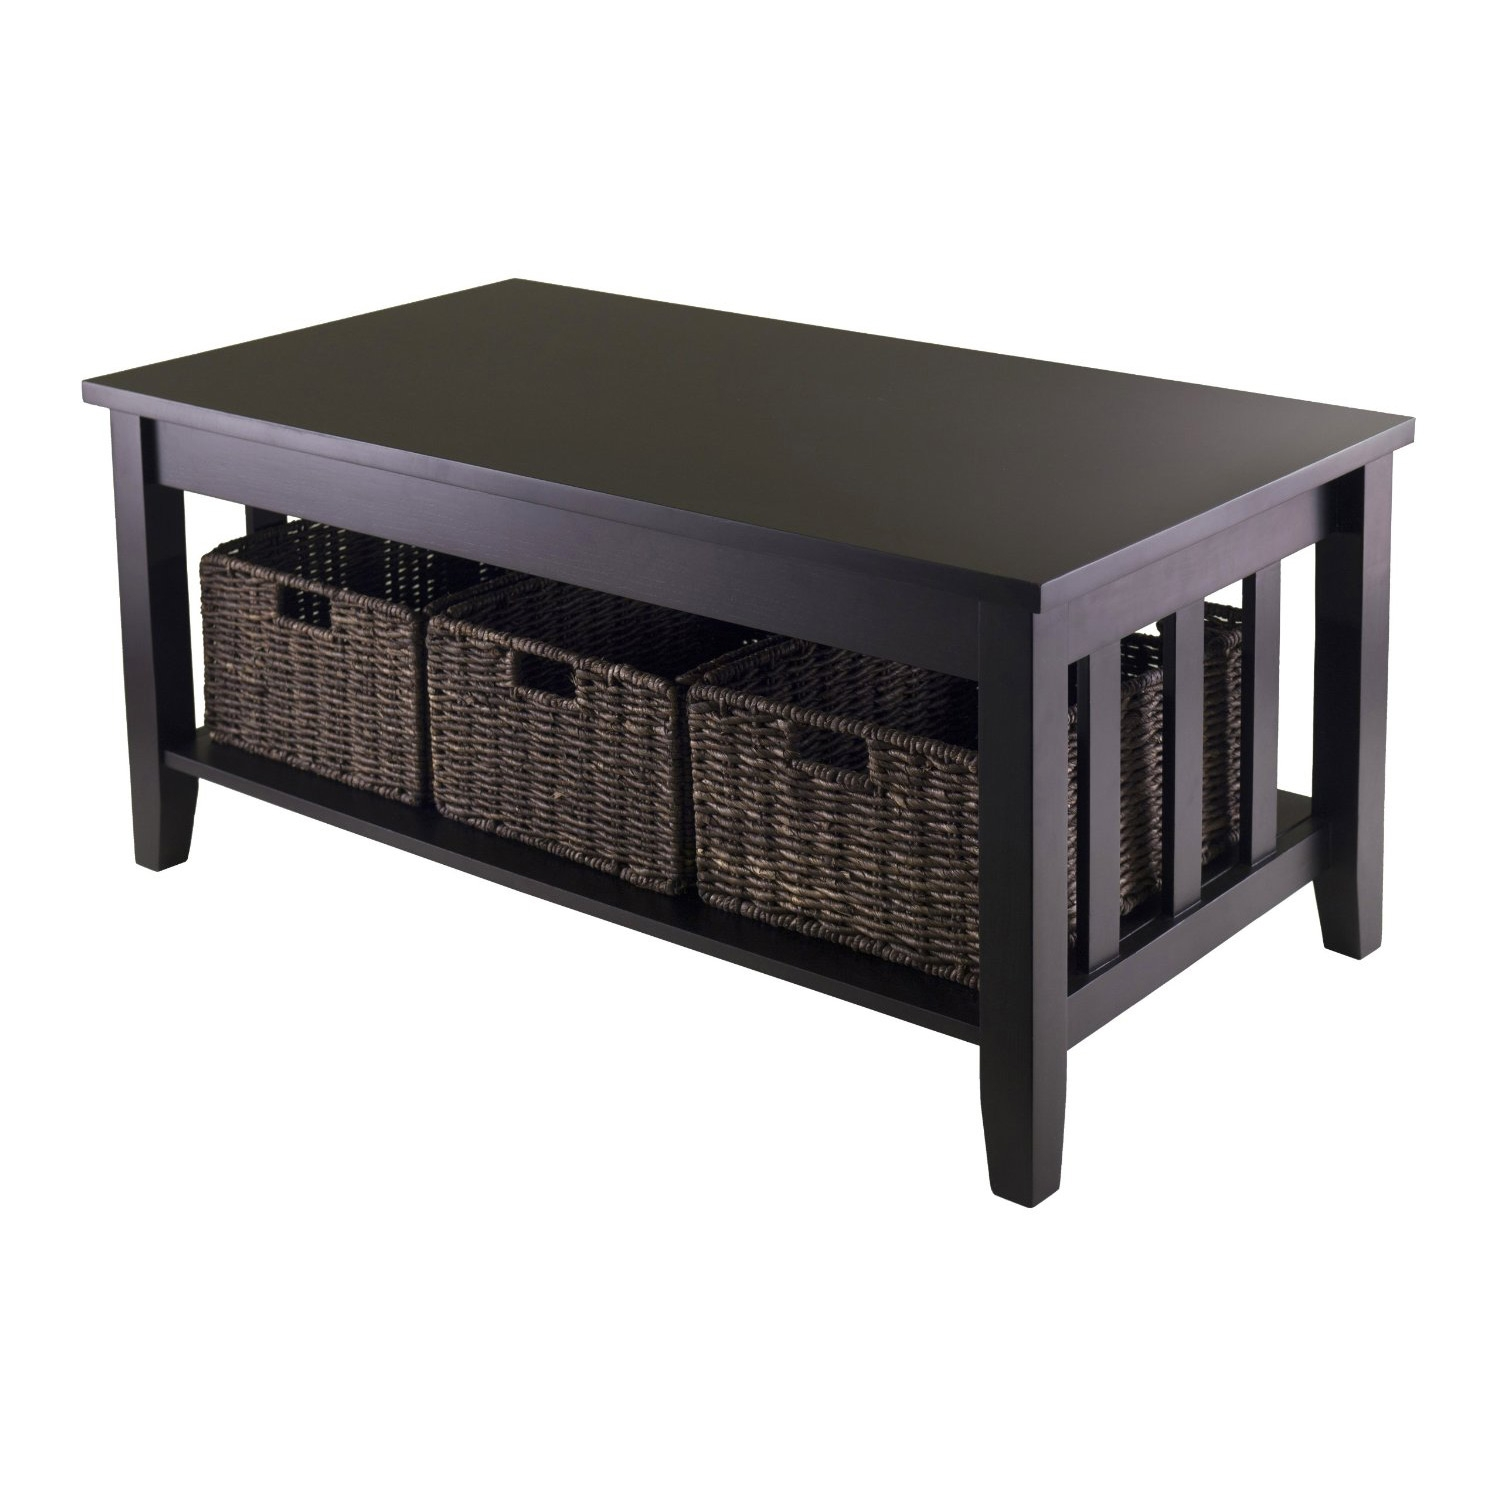 This Mission Style Dark Wood Coffee Table with 3-Folding Storage Baskets is a perfect table with plenty of storage. Coffee Table is 40-Inch Width by 22.05-Inch Depth by 18.11-Inch Height with 1 section with opening of 35.28-Inch Width by 20.47-Inch Depth by 9.84-Inch Height. Table comes with three foldable baskets made from Corn Hask, size 16-Inch Width by 11-Inch Depth by 7-Inch Height. Table made from solid and composite wood. Assembly Required.